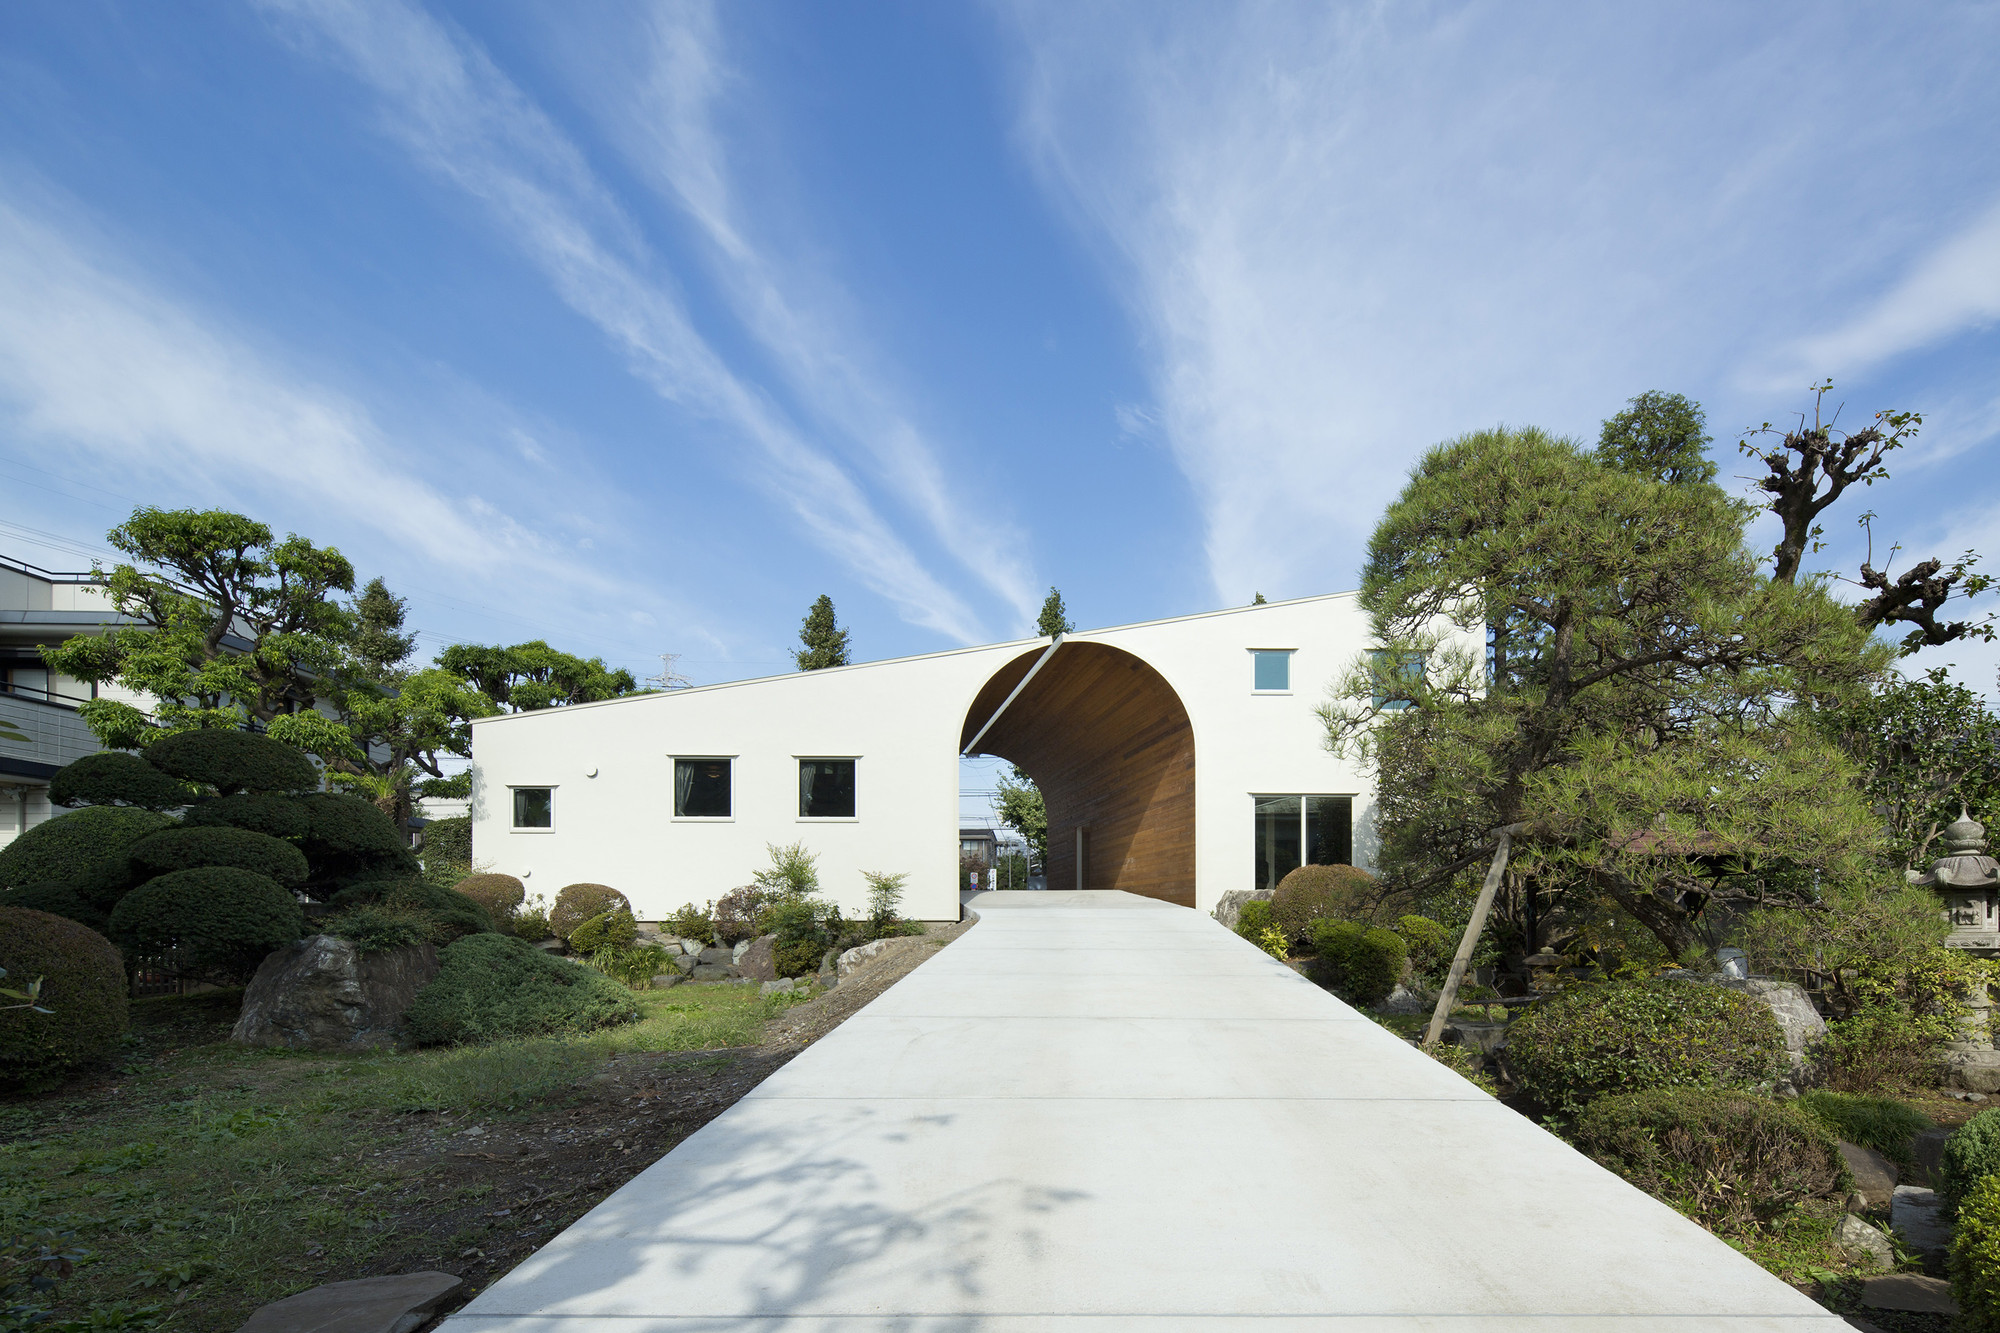 Arch Wall House  / Naf Architect & Design, © Toshiyuki Yano